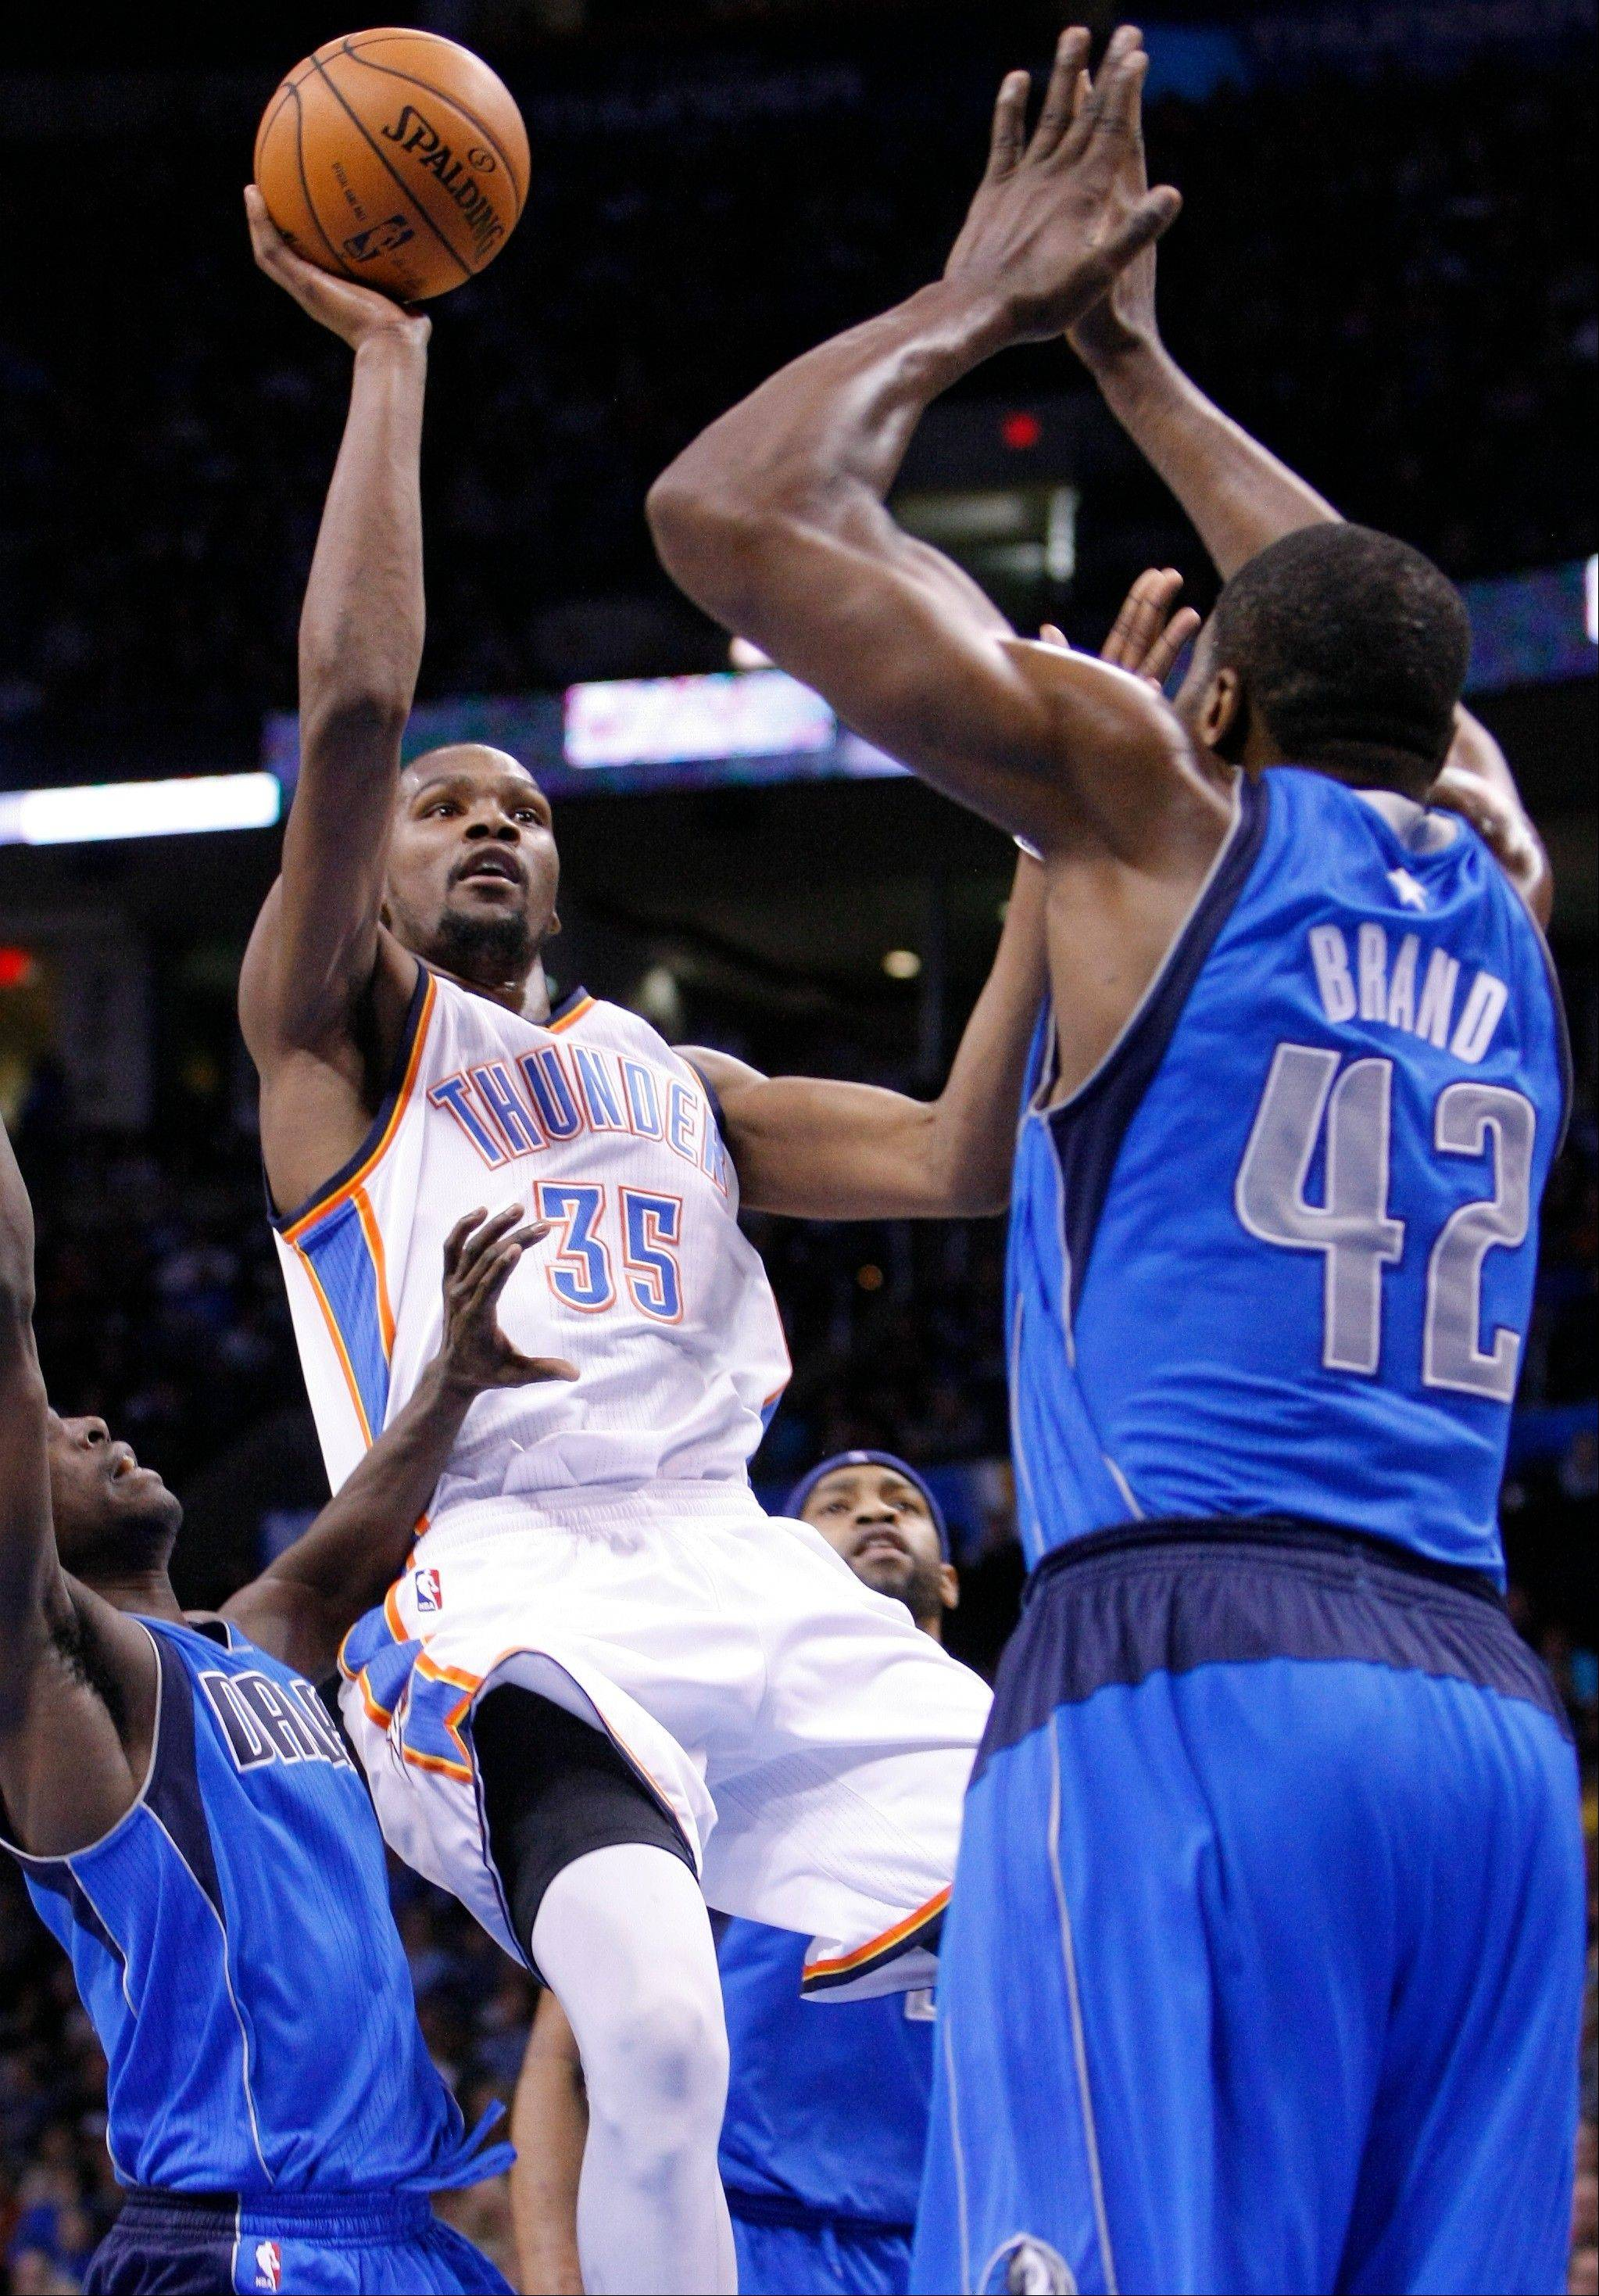 Thunder forward Kevin Durant, center, goes up for a basket in front of the Dallas Mavericks' Elton Brand during the second half Thursday in Oklahoma City.